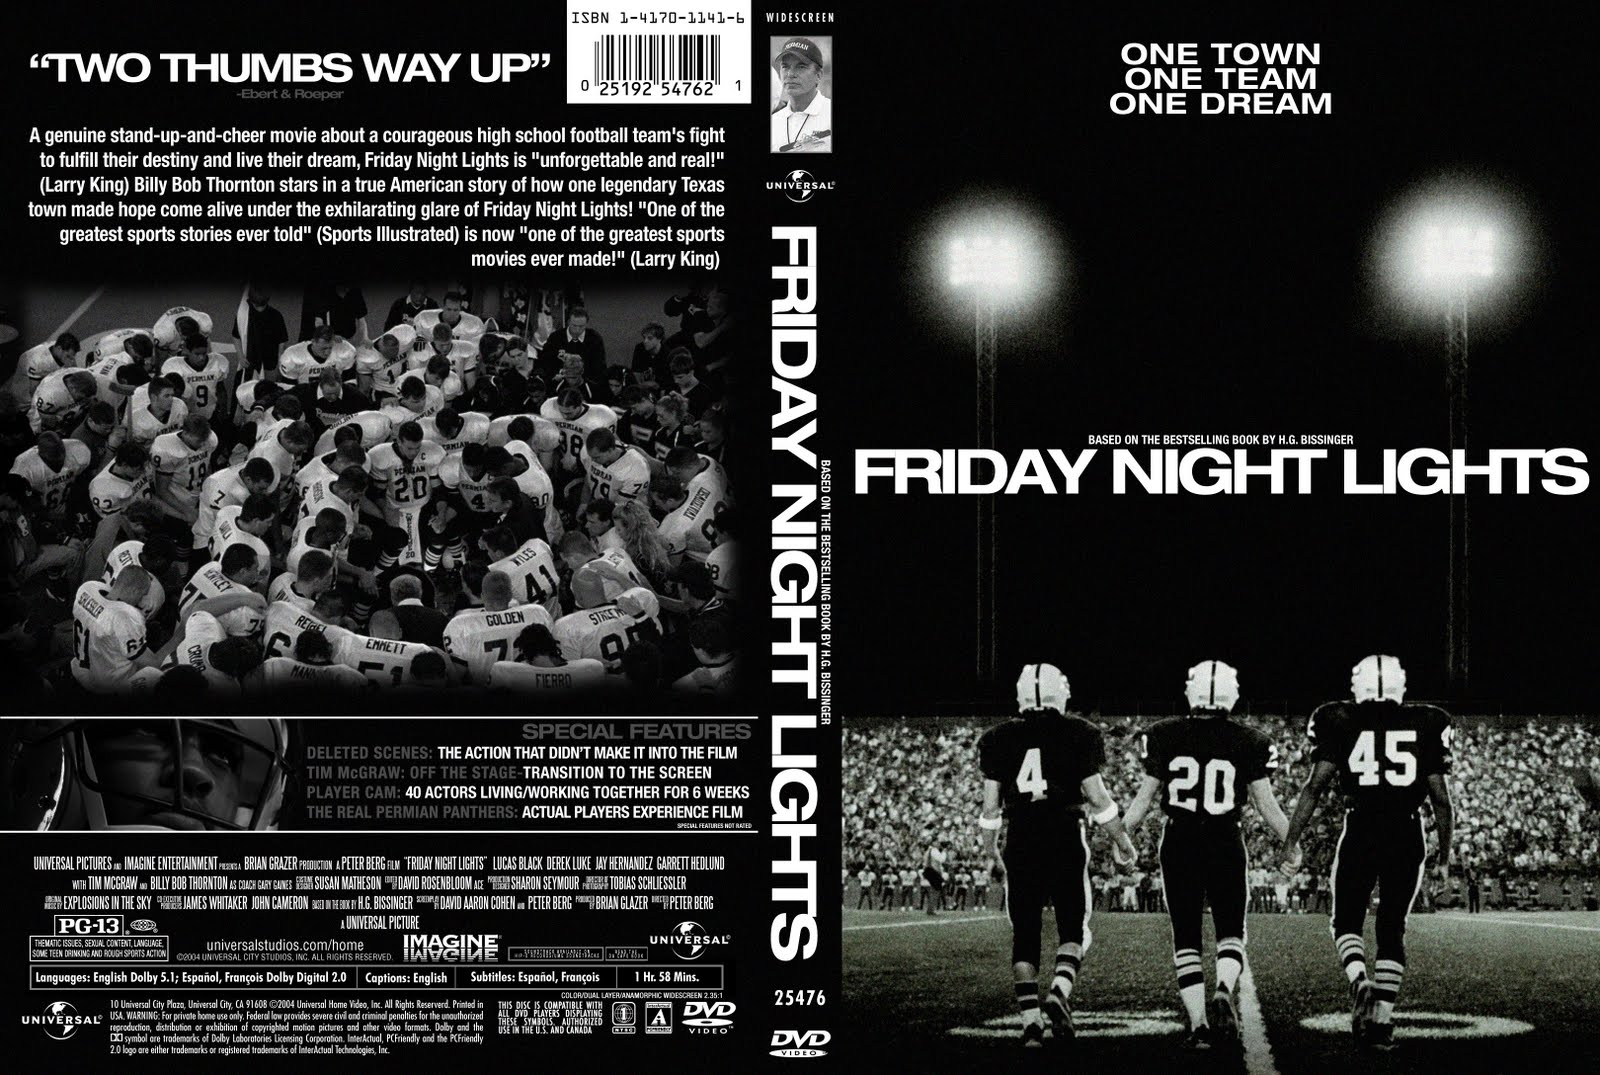 Essay title: A View from the Inside: Analyzing Friday Night Lights